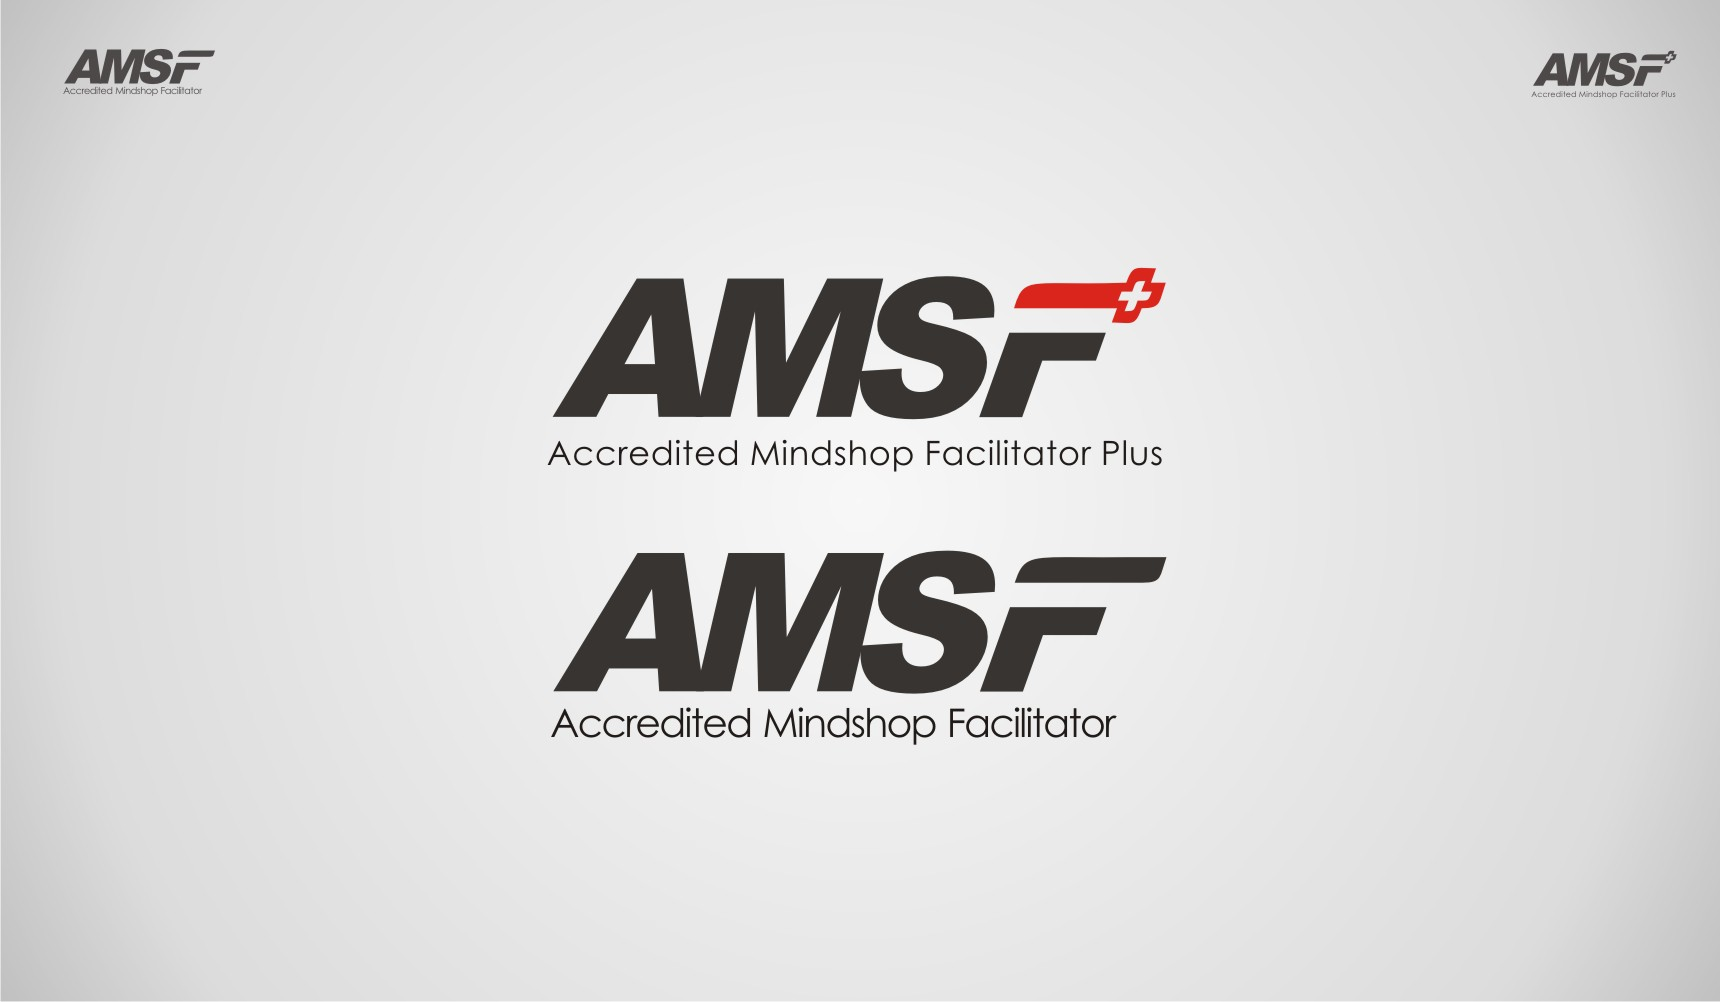 logo for 2 Versions of Logo - AMSF and AMSF PLUS